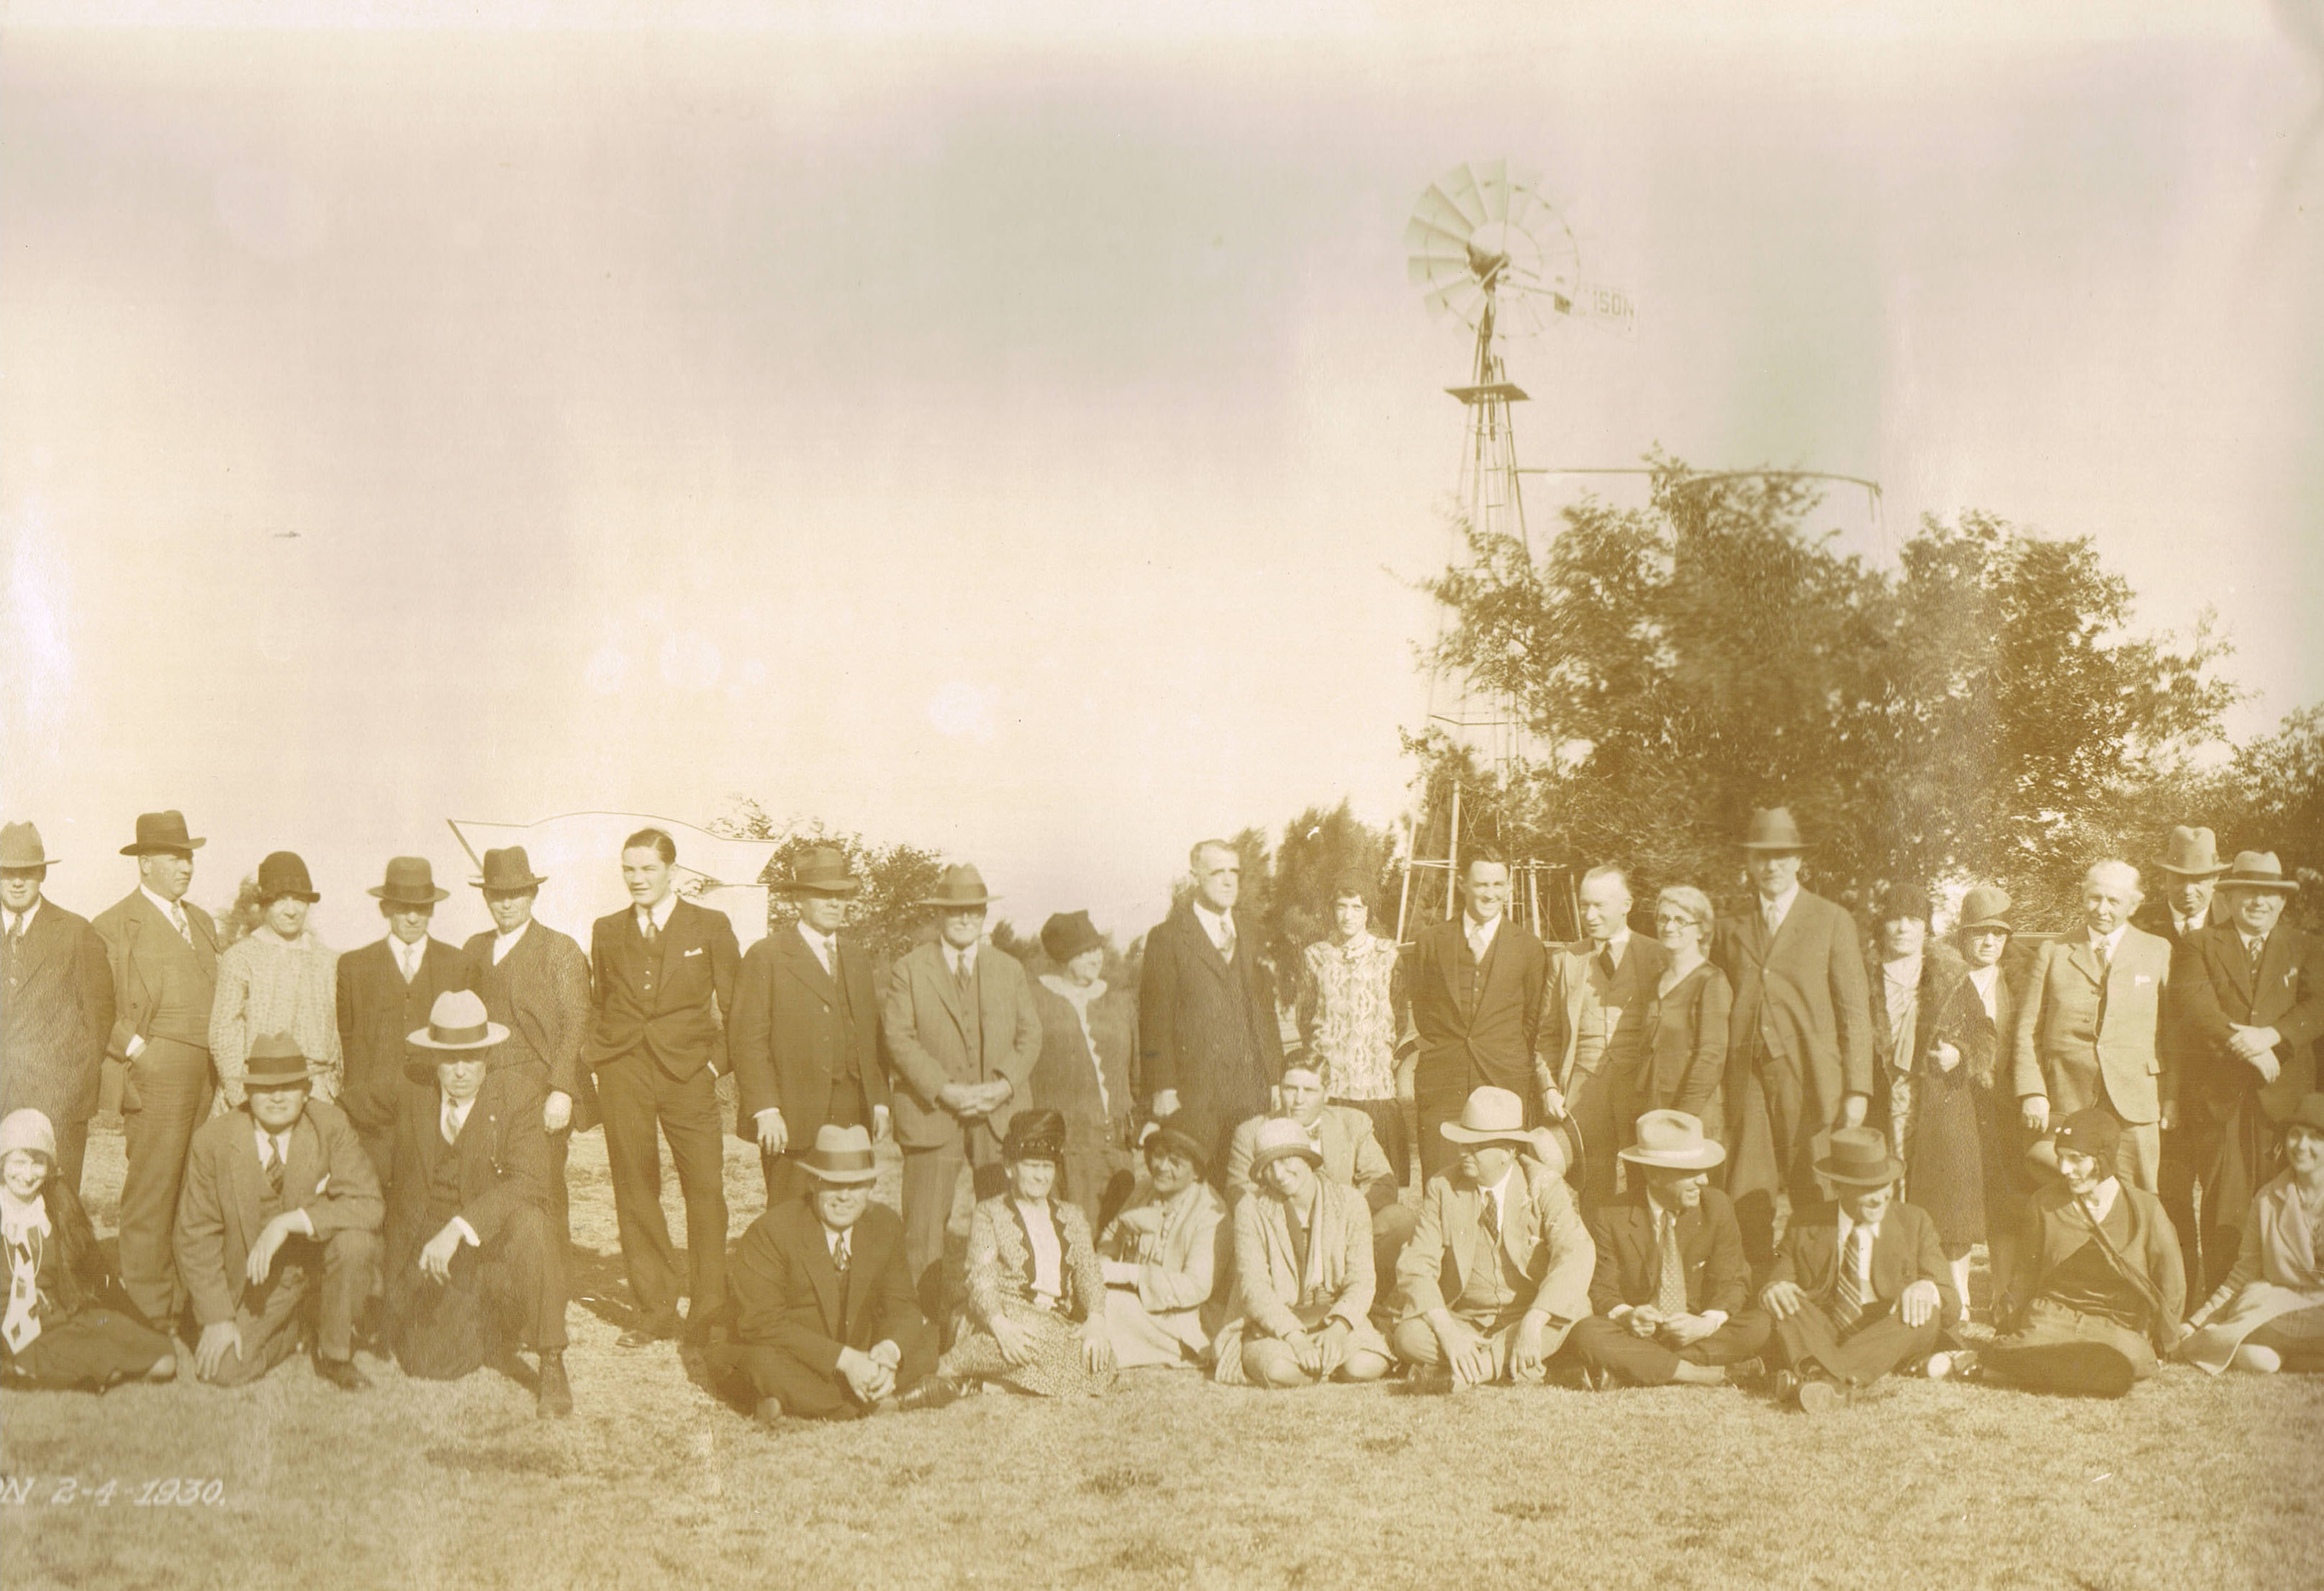 On the Myers/Crider/Wilson land in Texas: my grandfather in the back row, sixth from the left -- the dapper gentleman in the three-piece suit, no hat.